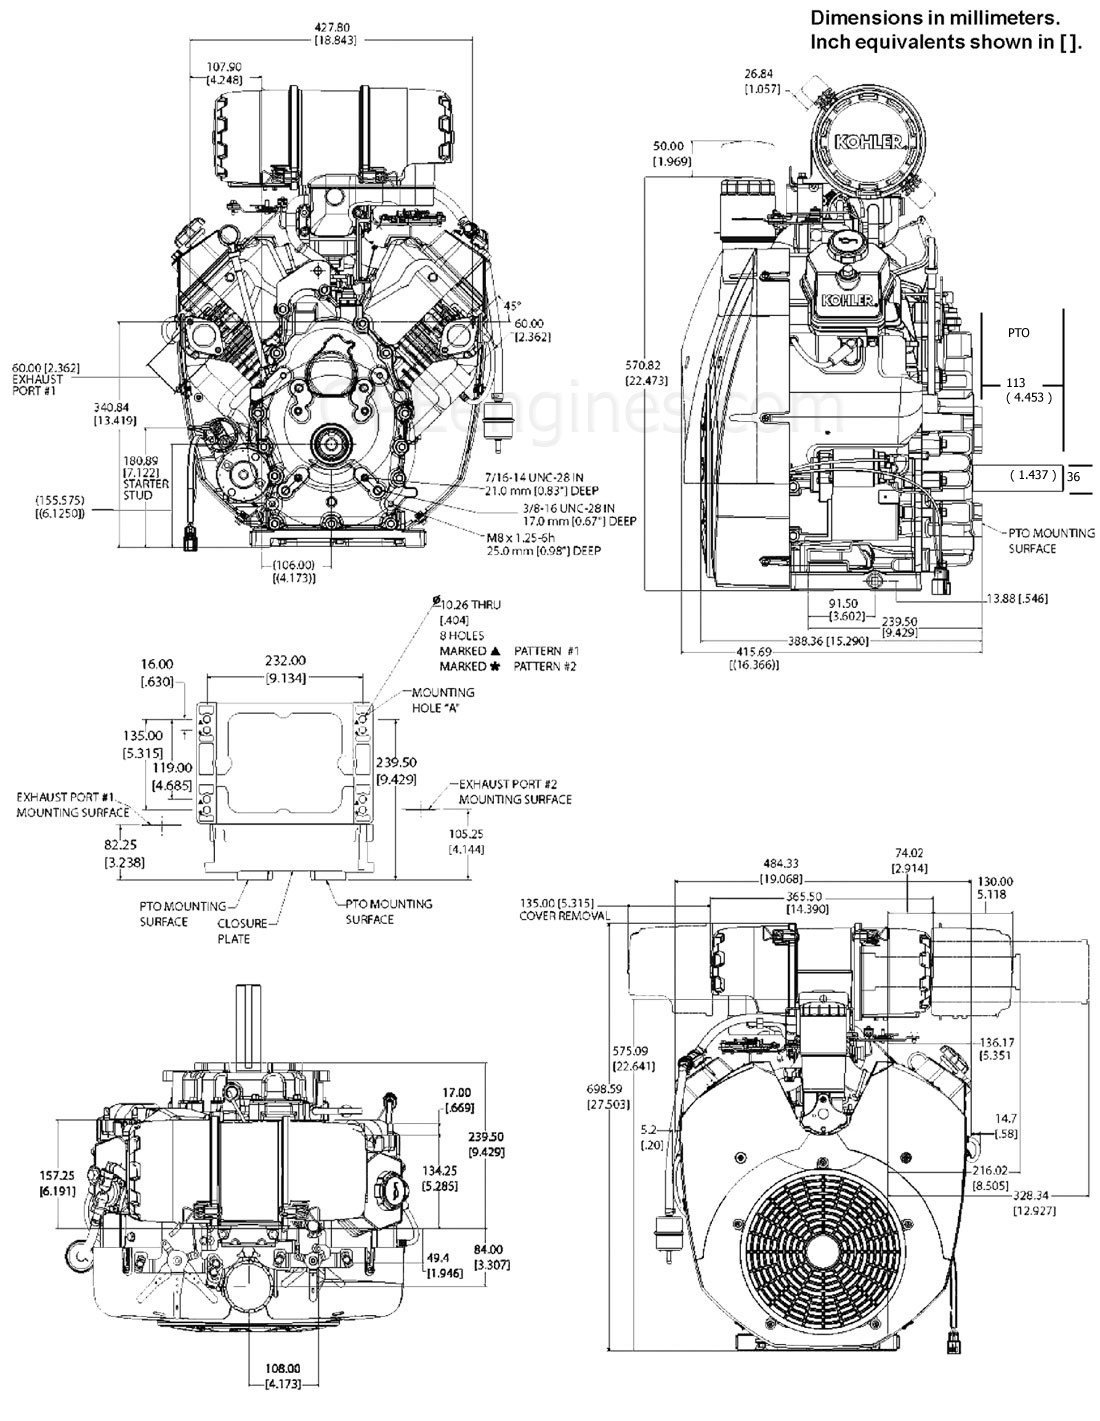 CH980_drawings ch940 ch960 ch980 ch1000 drawings kohler engines and parts store kohler k321s wiring diagram at edmiracle.co